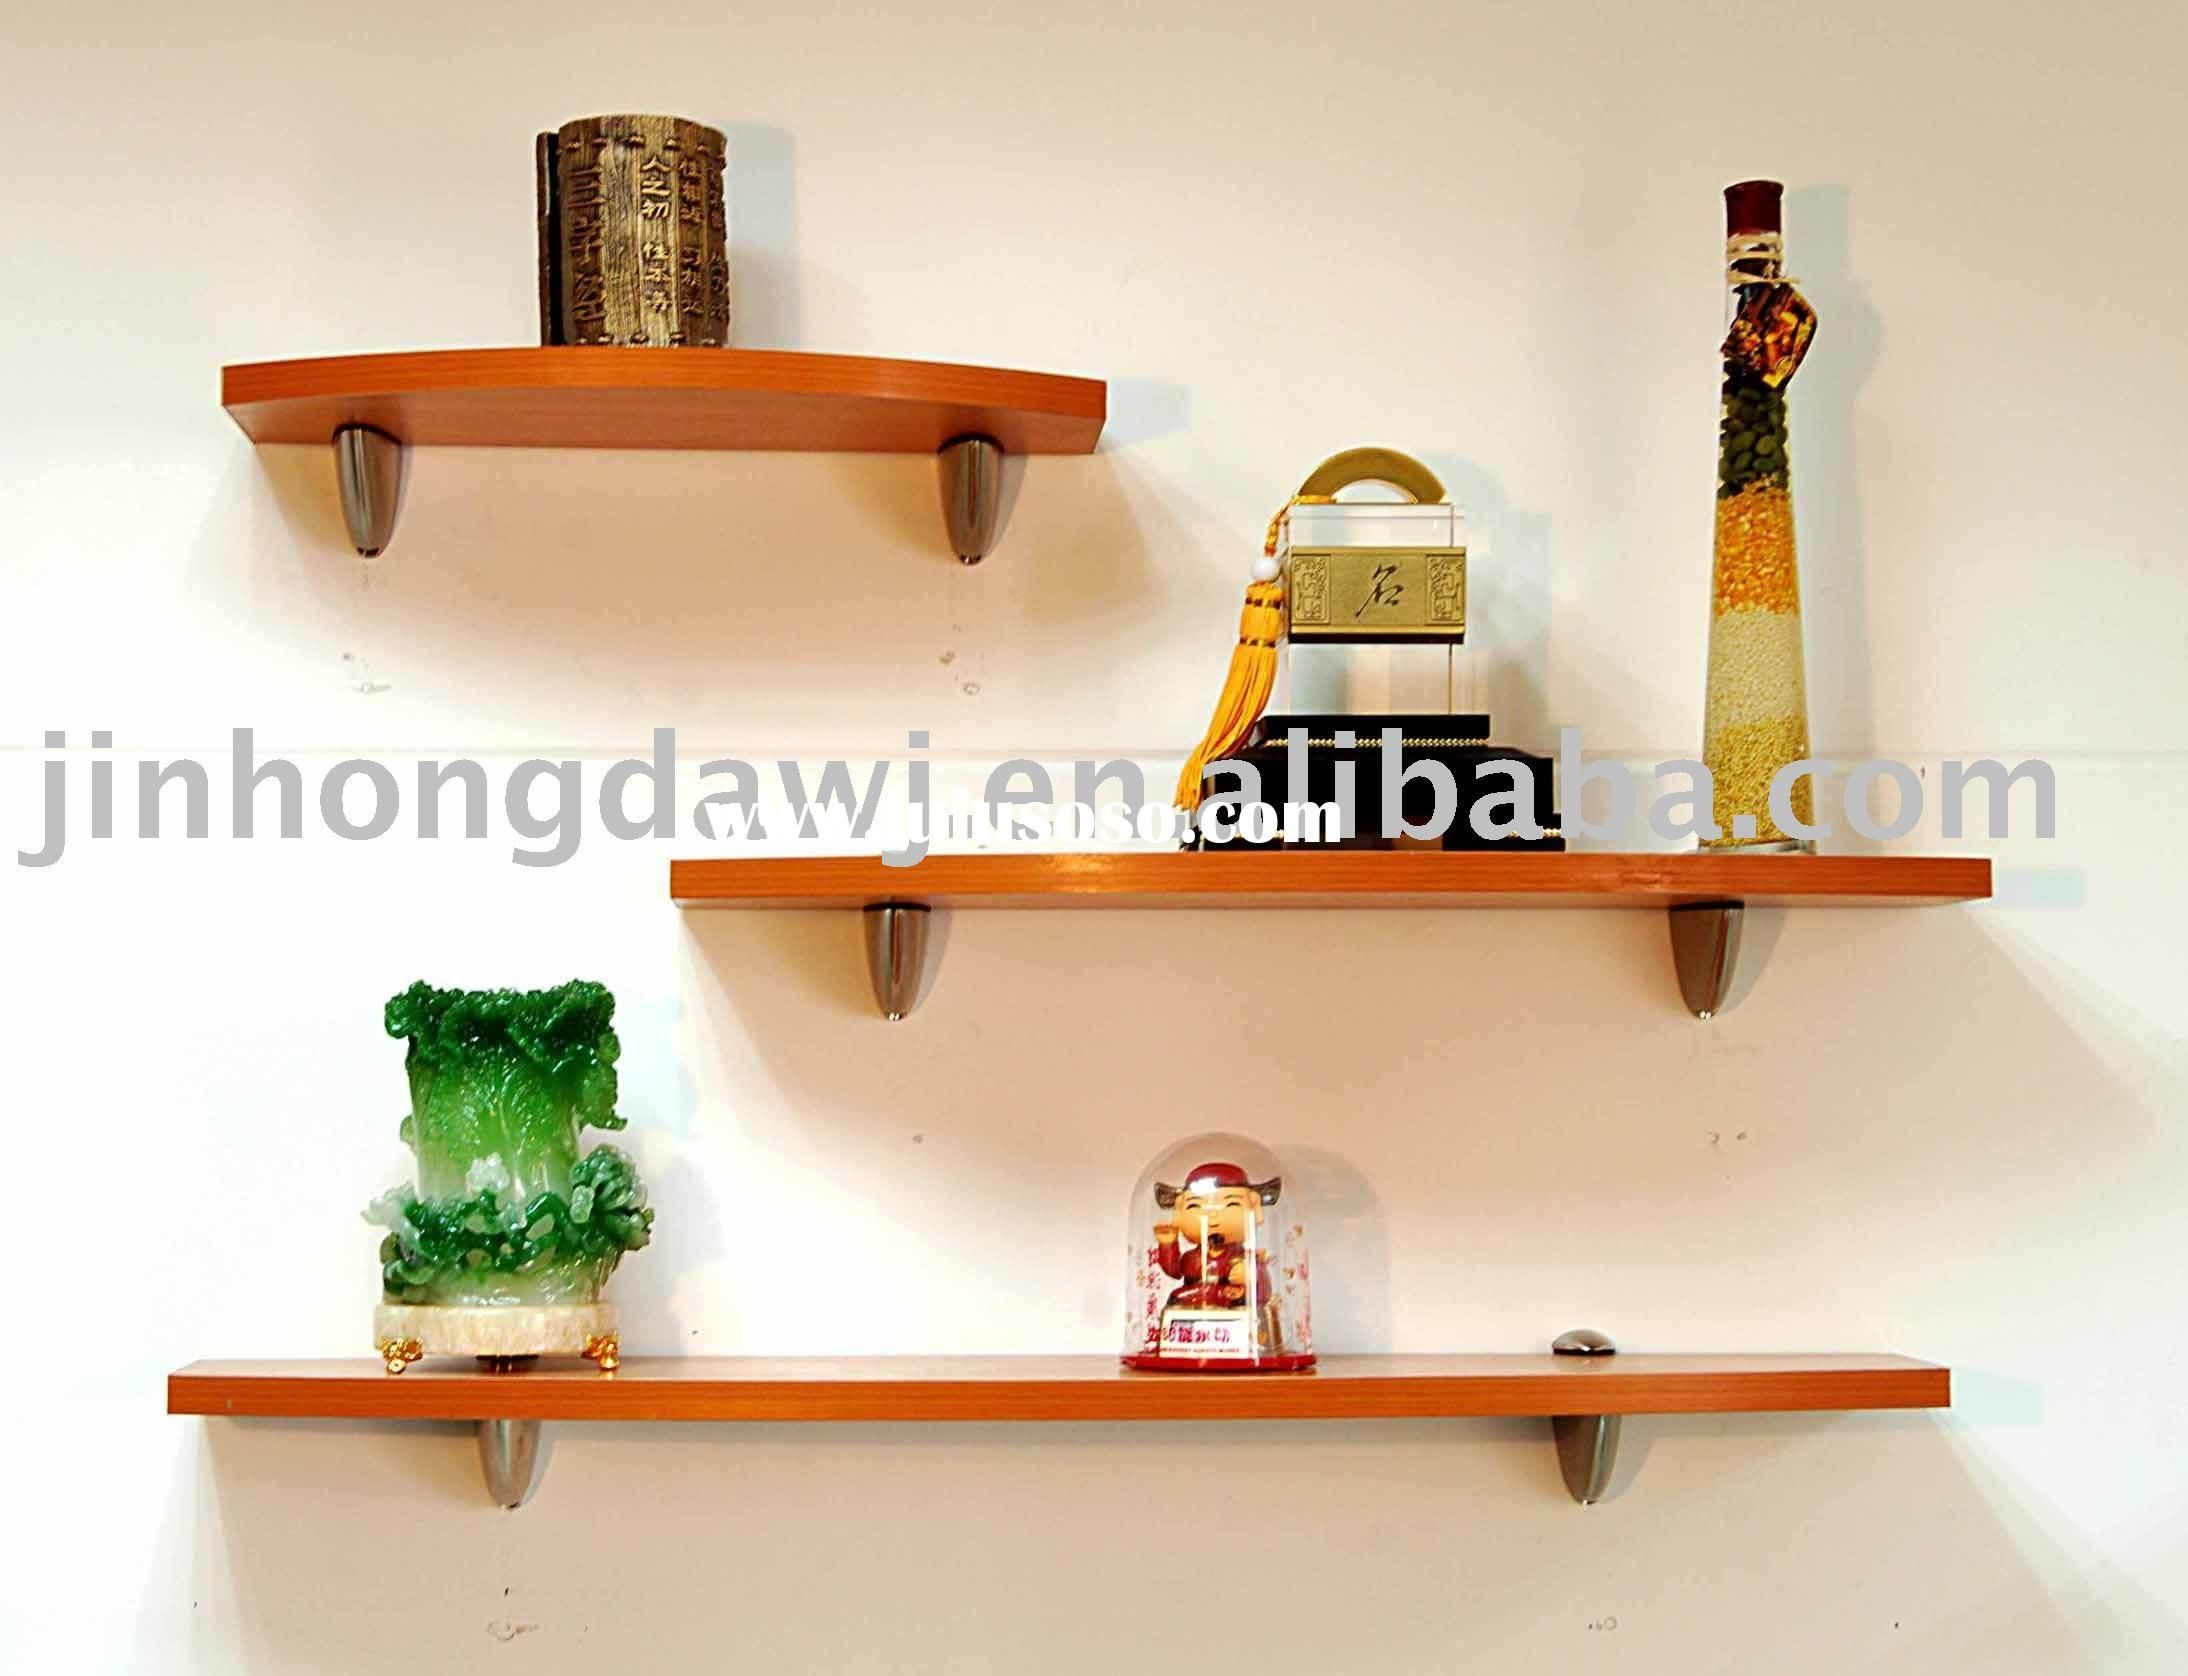 46 creative diy wall shelves ideas guru koala - Wooden Wall Rack Designs